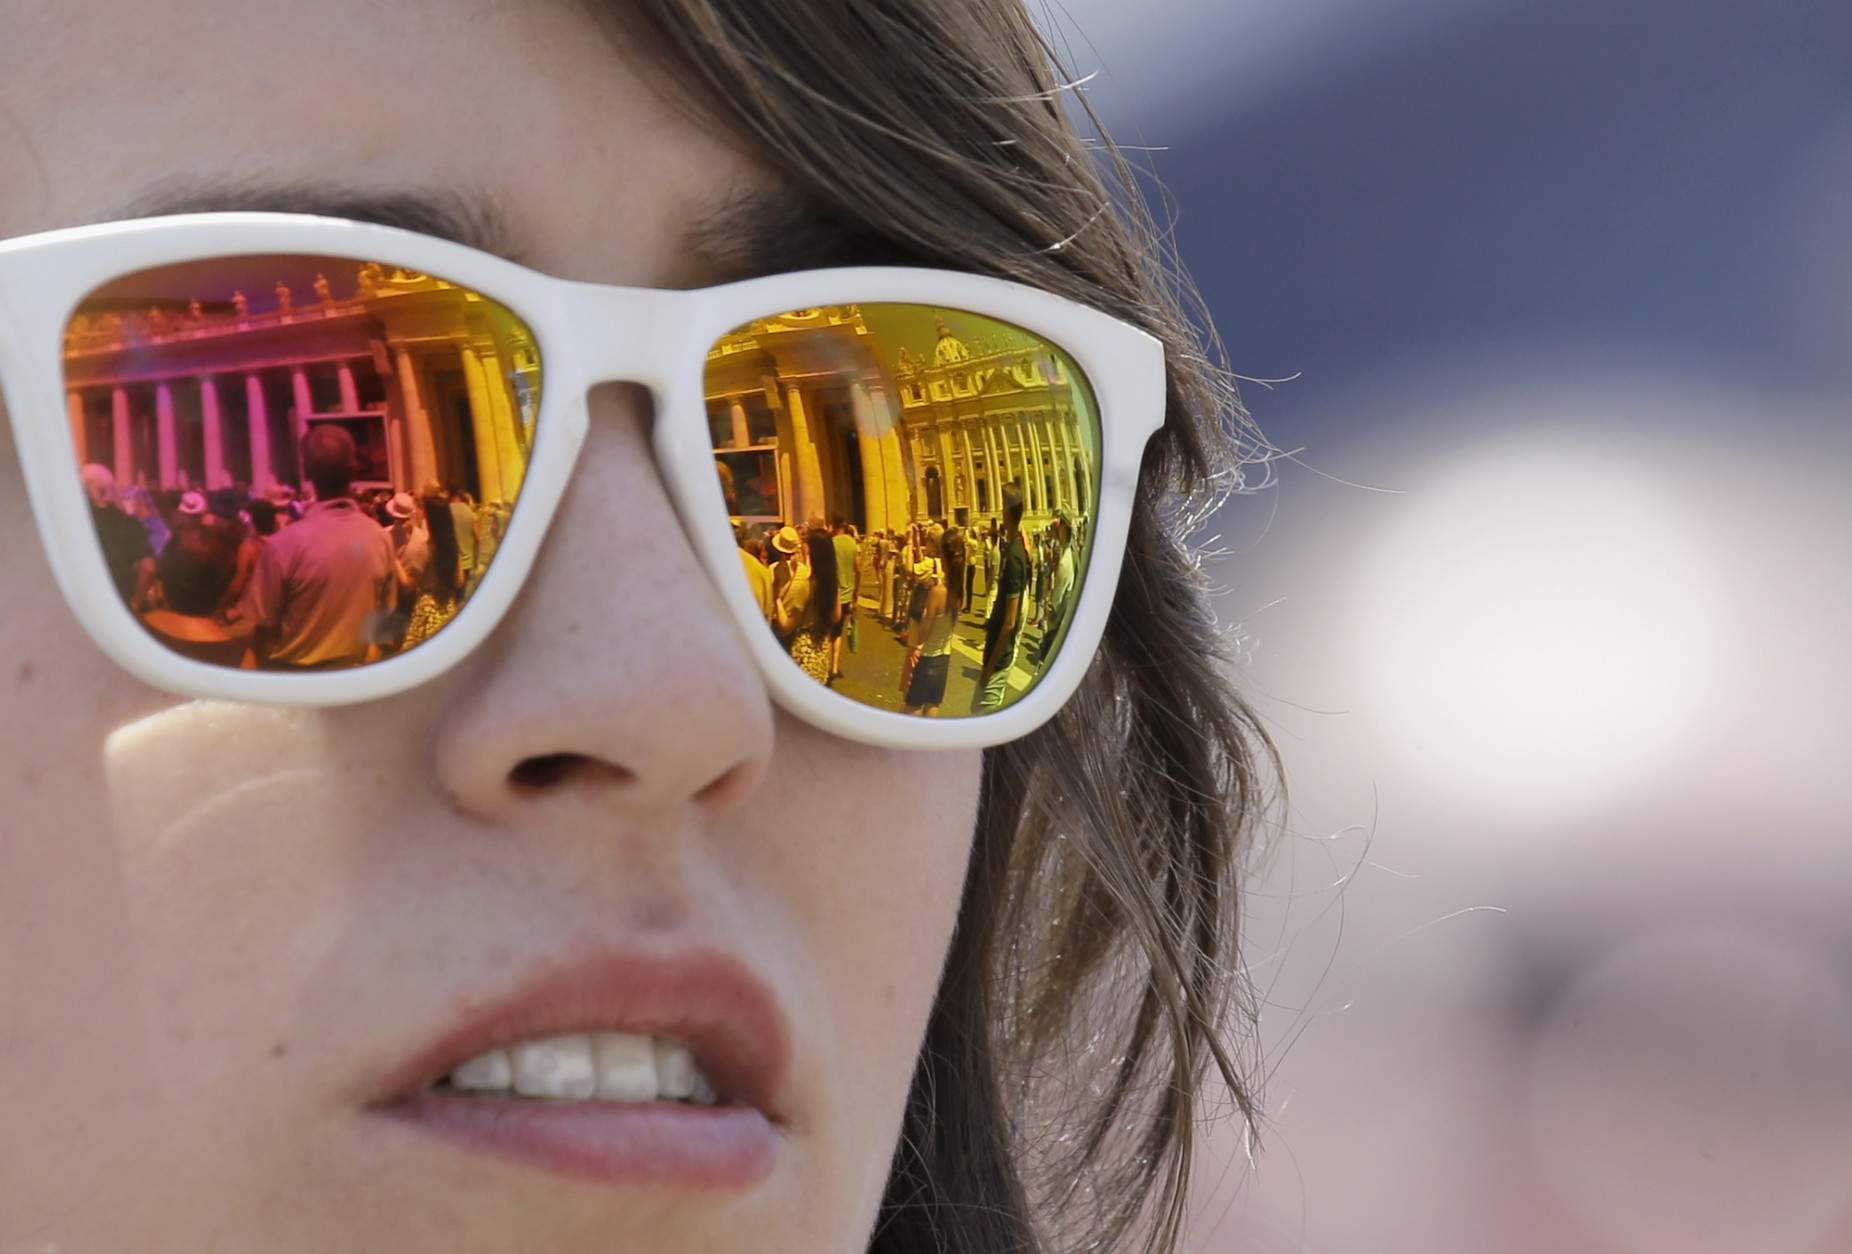 """The St. Peter's Square is reflected on the sunglasses of a woman during the Angelus noon prayer delivered by Pope Francis from his studio's window at the Vatican, Sunday, July 19, 2015. Speaking from his studio window, Francis told the crowd Sunday in St. Peter's Square: """"I see you are courageous with this heat in the square. A tip of the hat to you!"""" Many faithful used sun umbrellas. Temperatures in Rome this week could hit 38-39C (100-102F). Sizzling heat and oppressive humidity have gripped Italy this month, with some nights in Rome seeing """"low"""" temperatures hovering near 30C (86F). (AP Photo/Gregorio Borgia)"""